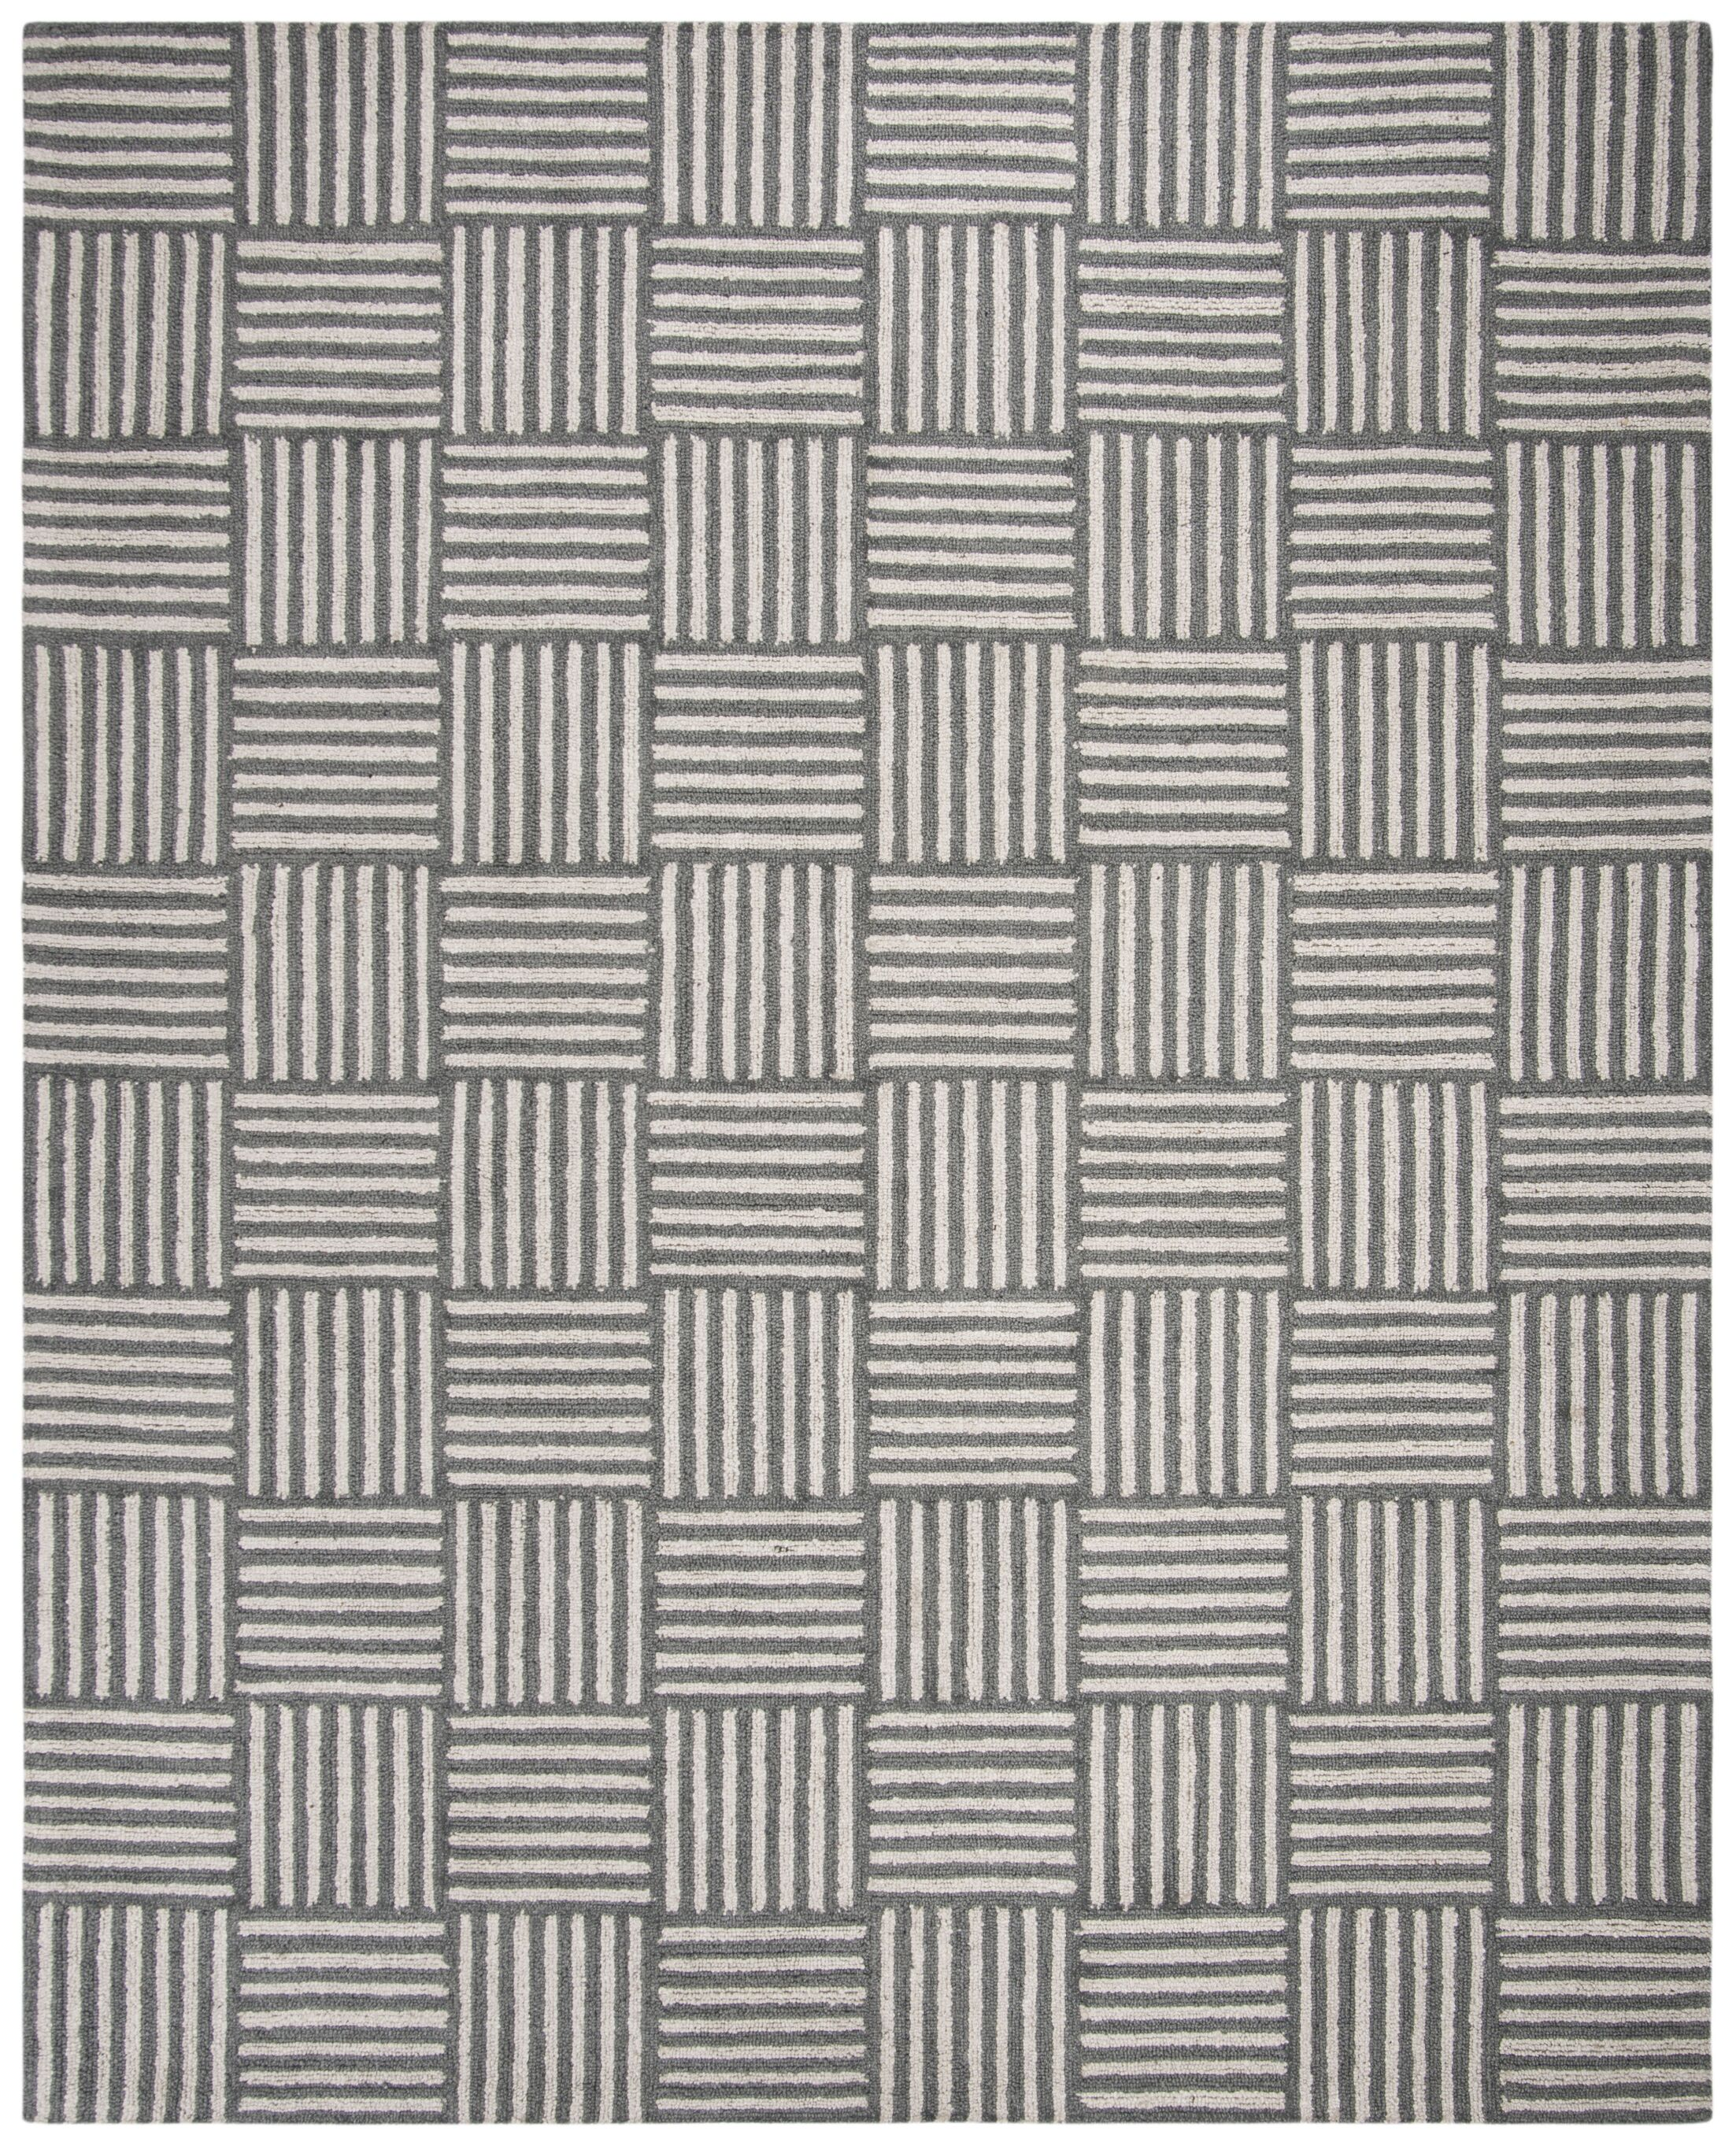 Brendan Hand-Tufted Ivory/Dark Gray Area Rug Rug Size: Rectangle 8' x 10'